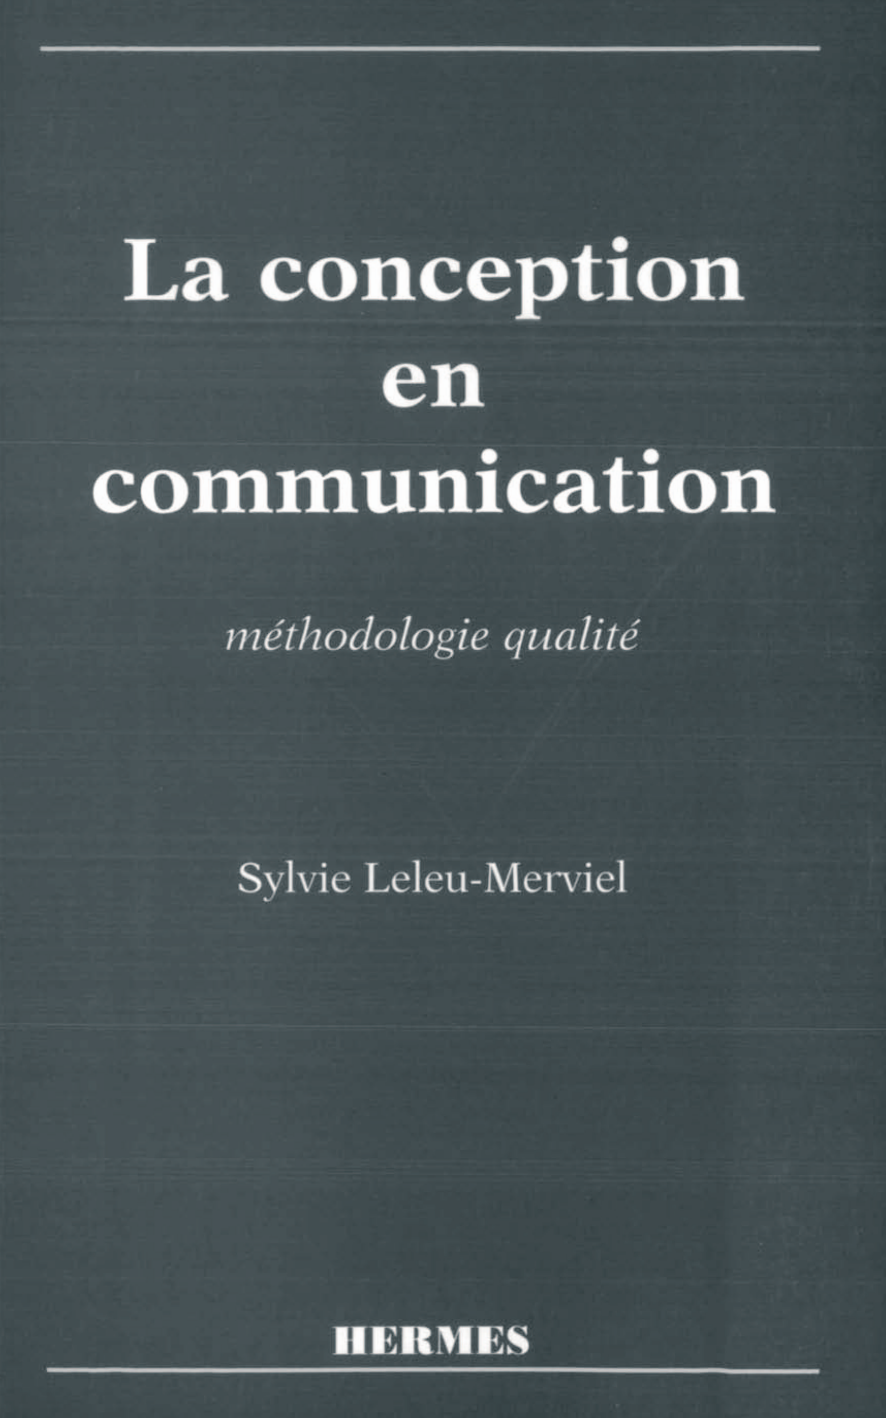 La conception en communication: Méthodologie qualité